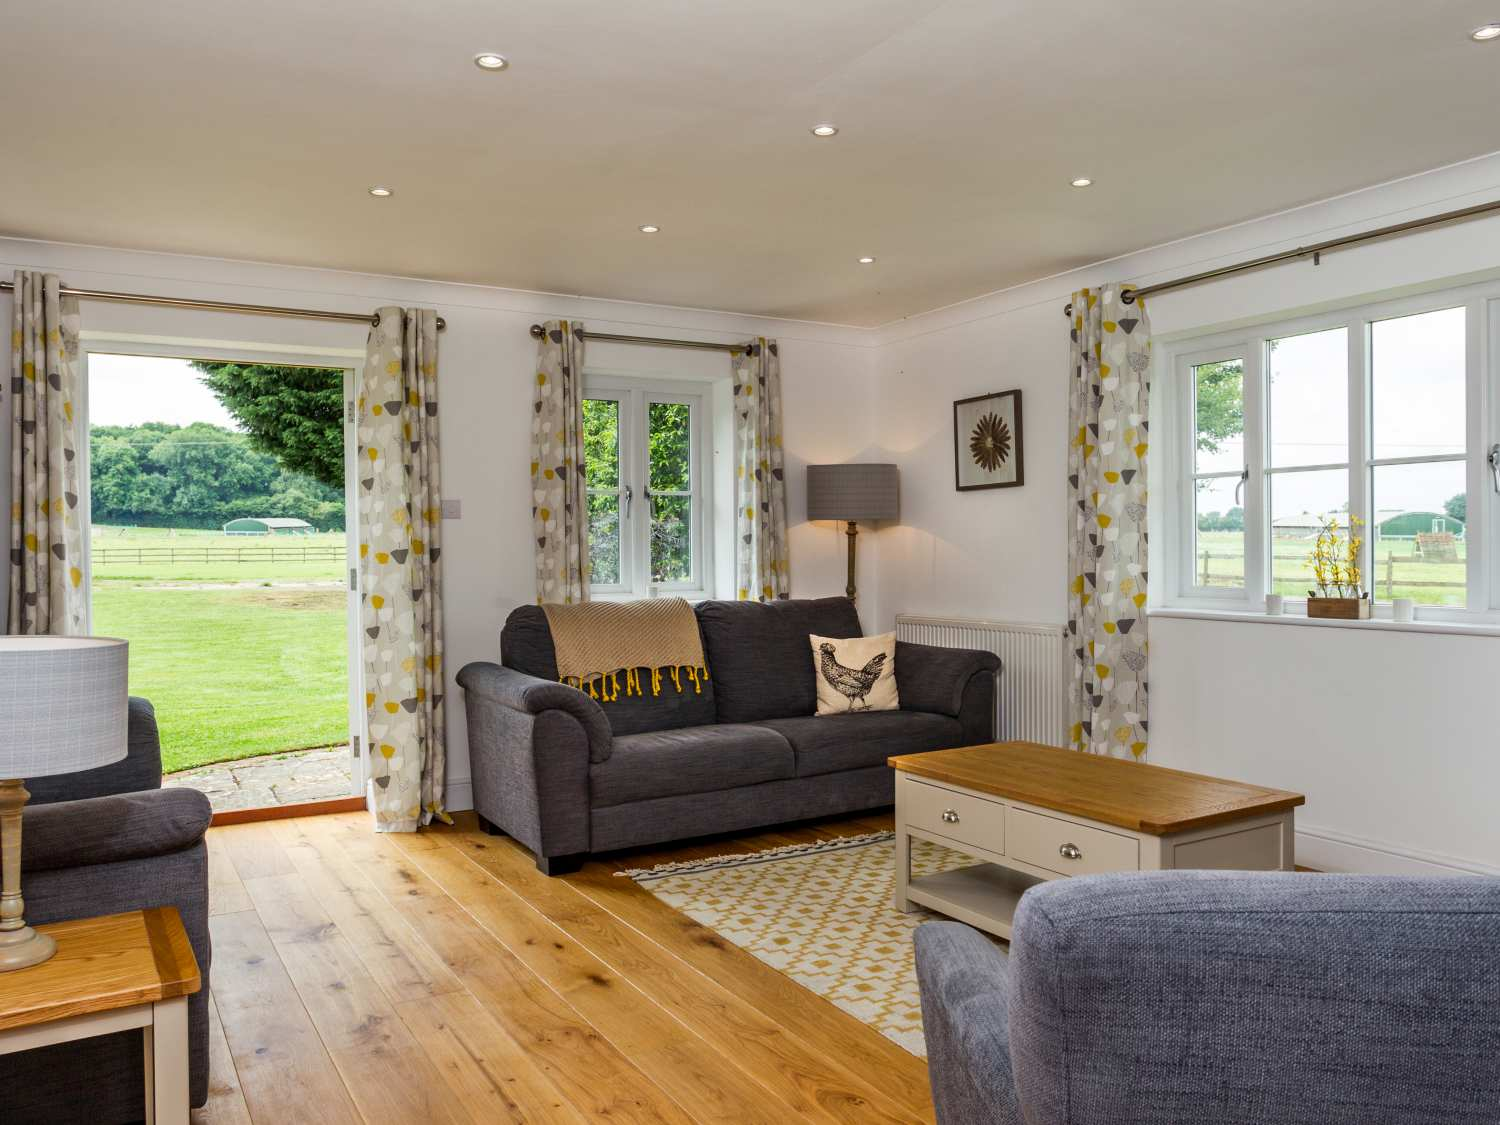 The Farm House Holiday Cottage Upper Seagry15